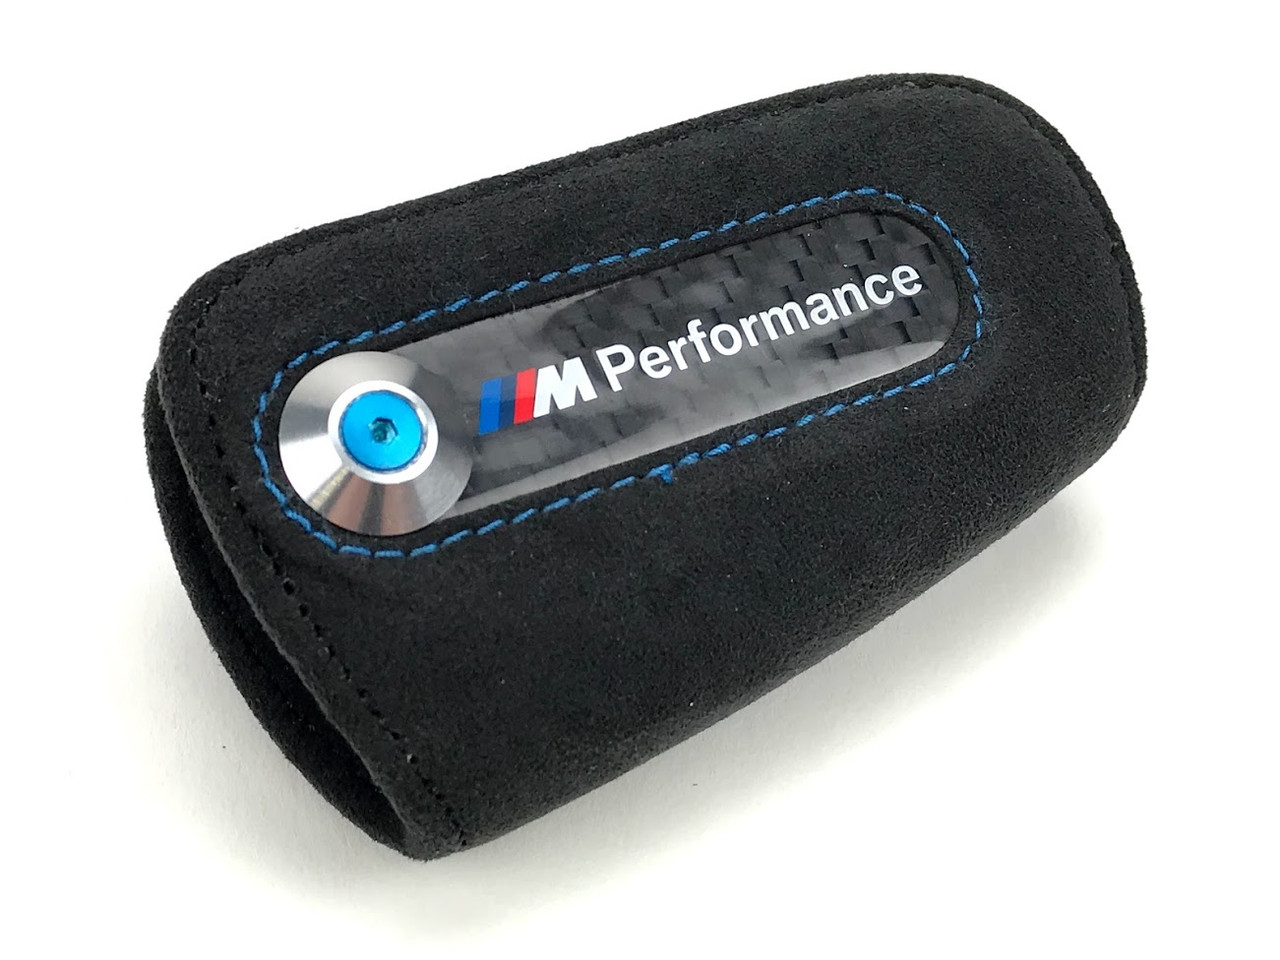 BMW Genuine M Performance Key Fob With Black Alcantara Case 82292355519